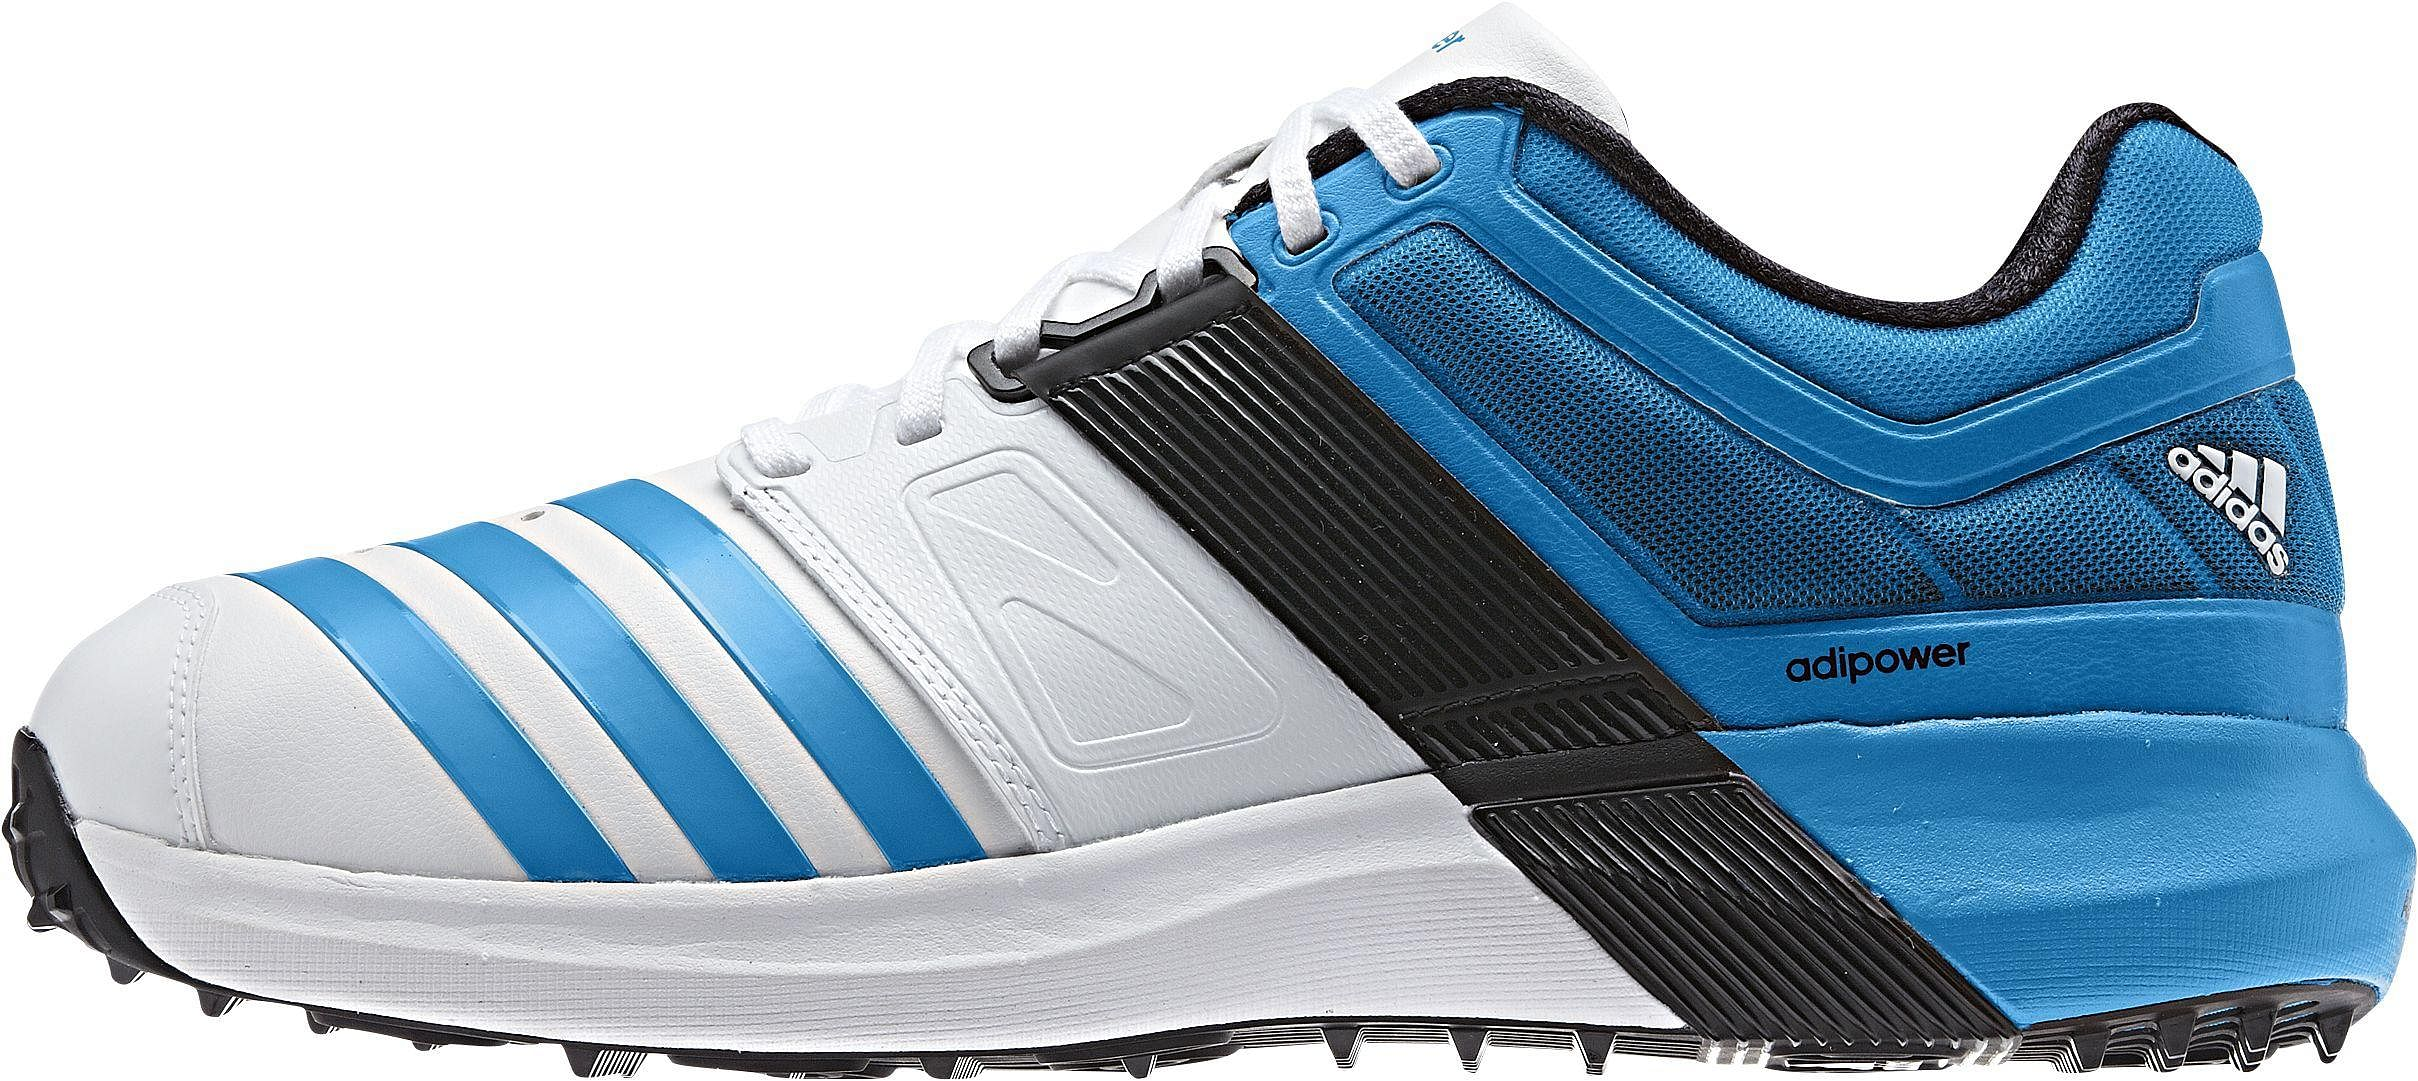 best sports shoes for to buy